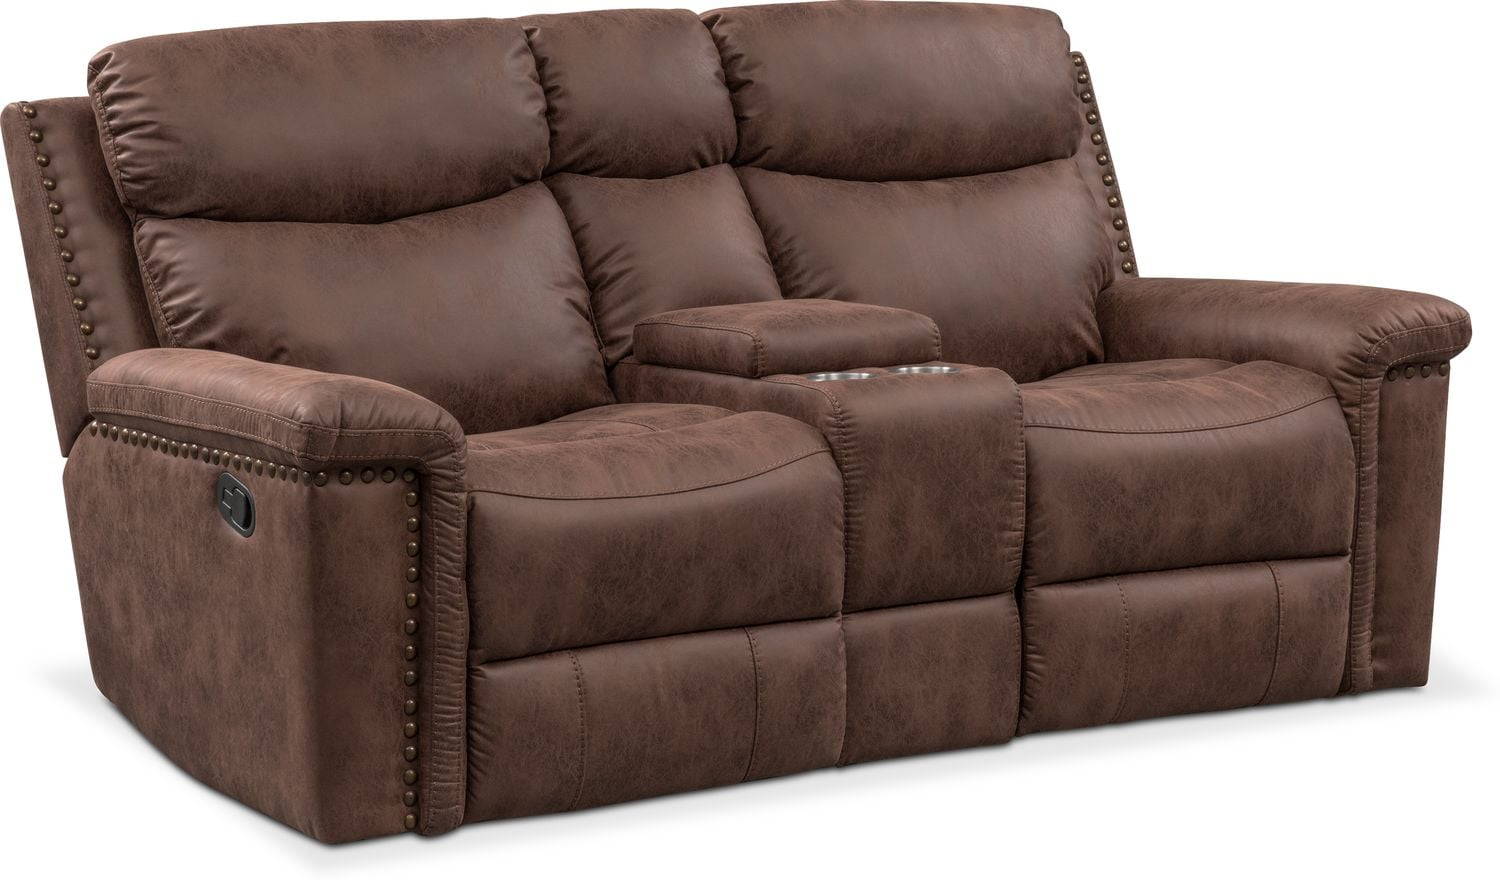 Montana Dual Manual Reclining Loveseat With Console   Brown